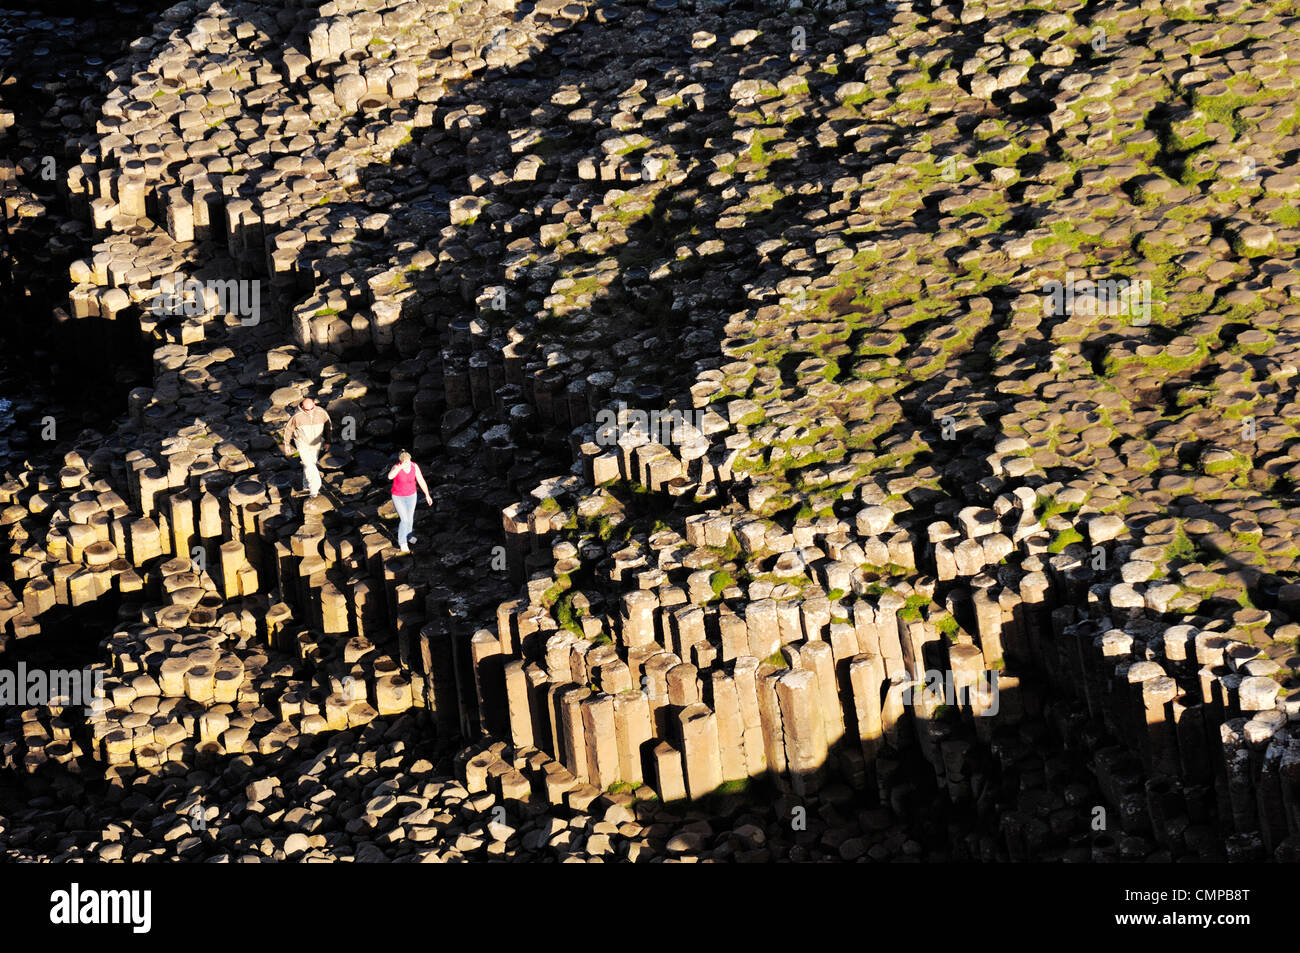 The Giants Causeway, Co. Antrim, Northern Ireland. Looking down from clifftop at hexagonal basalt columns of the - Stock Image